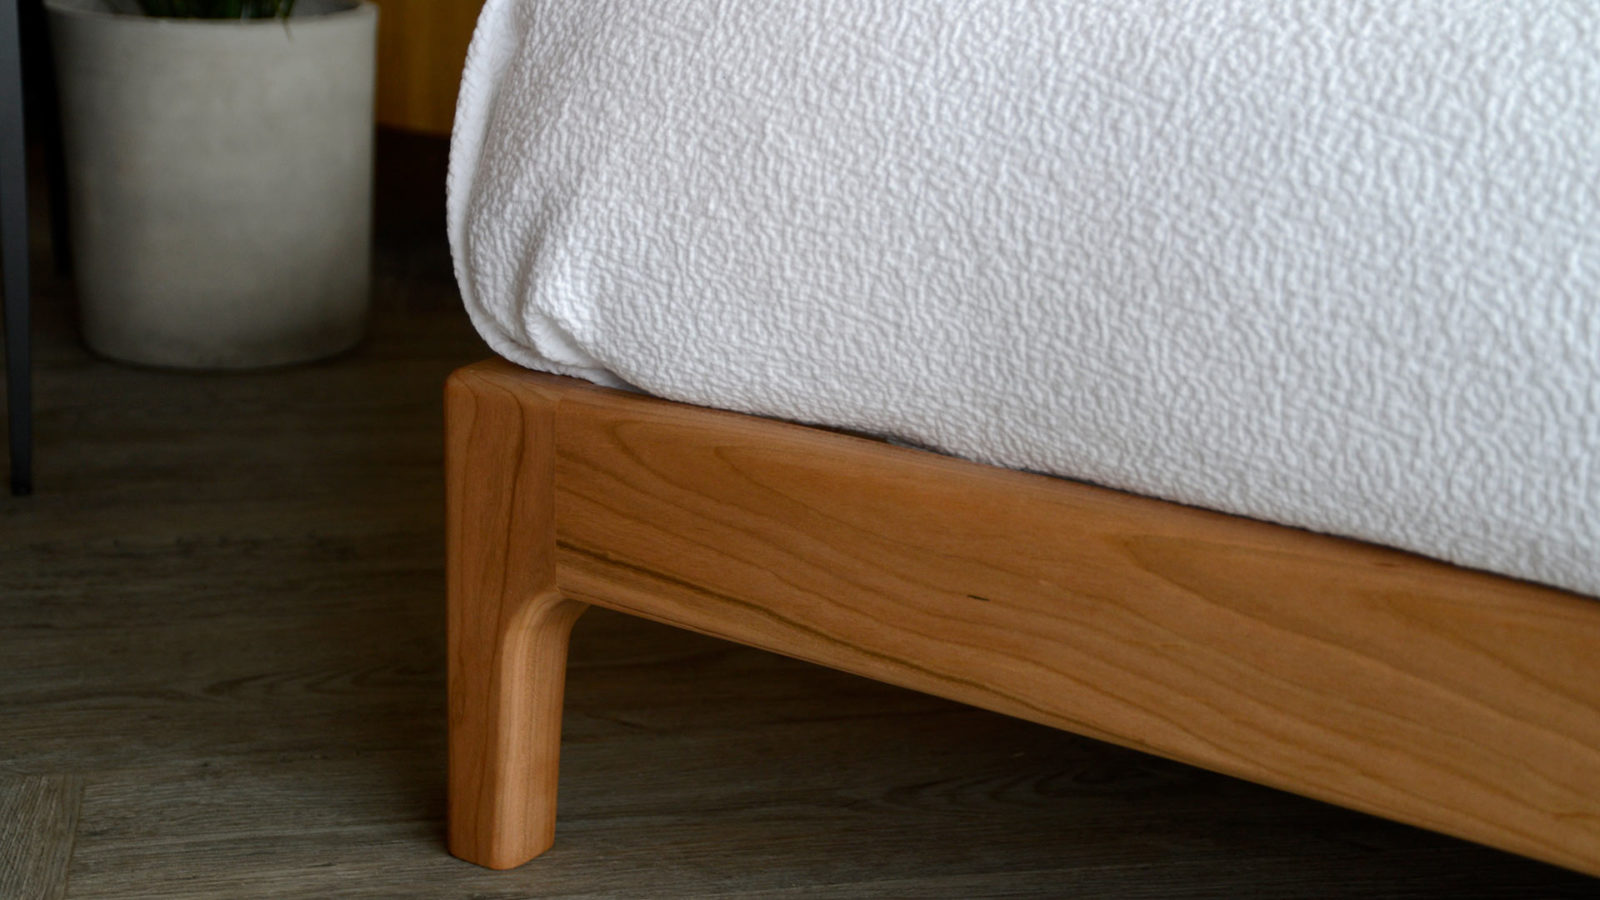 A closer view of the foot of the hand made low Pimlico bed in solid cherry